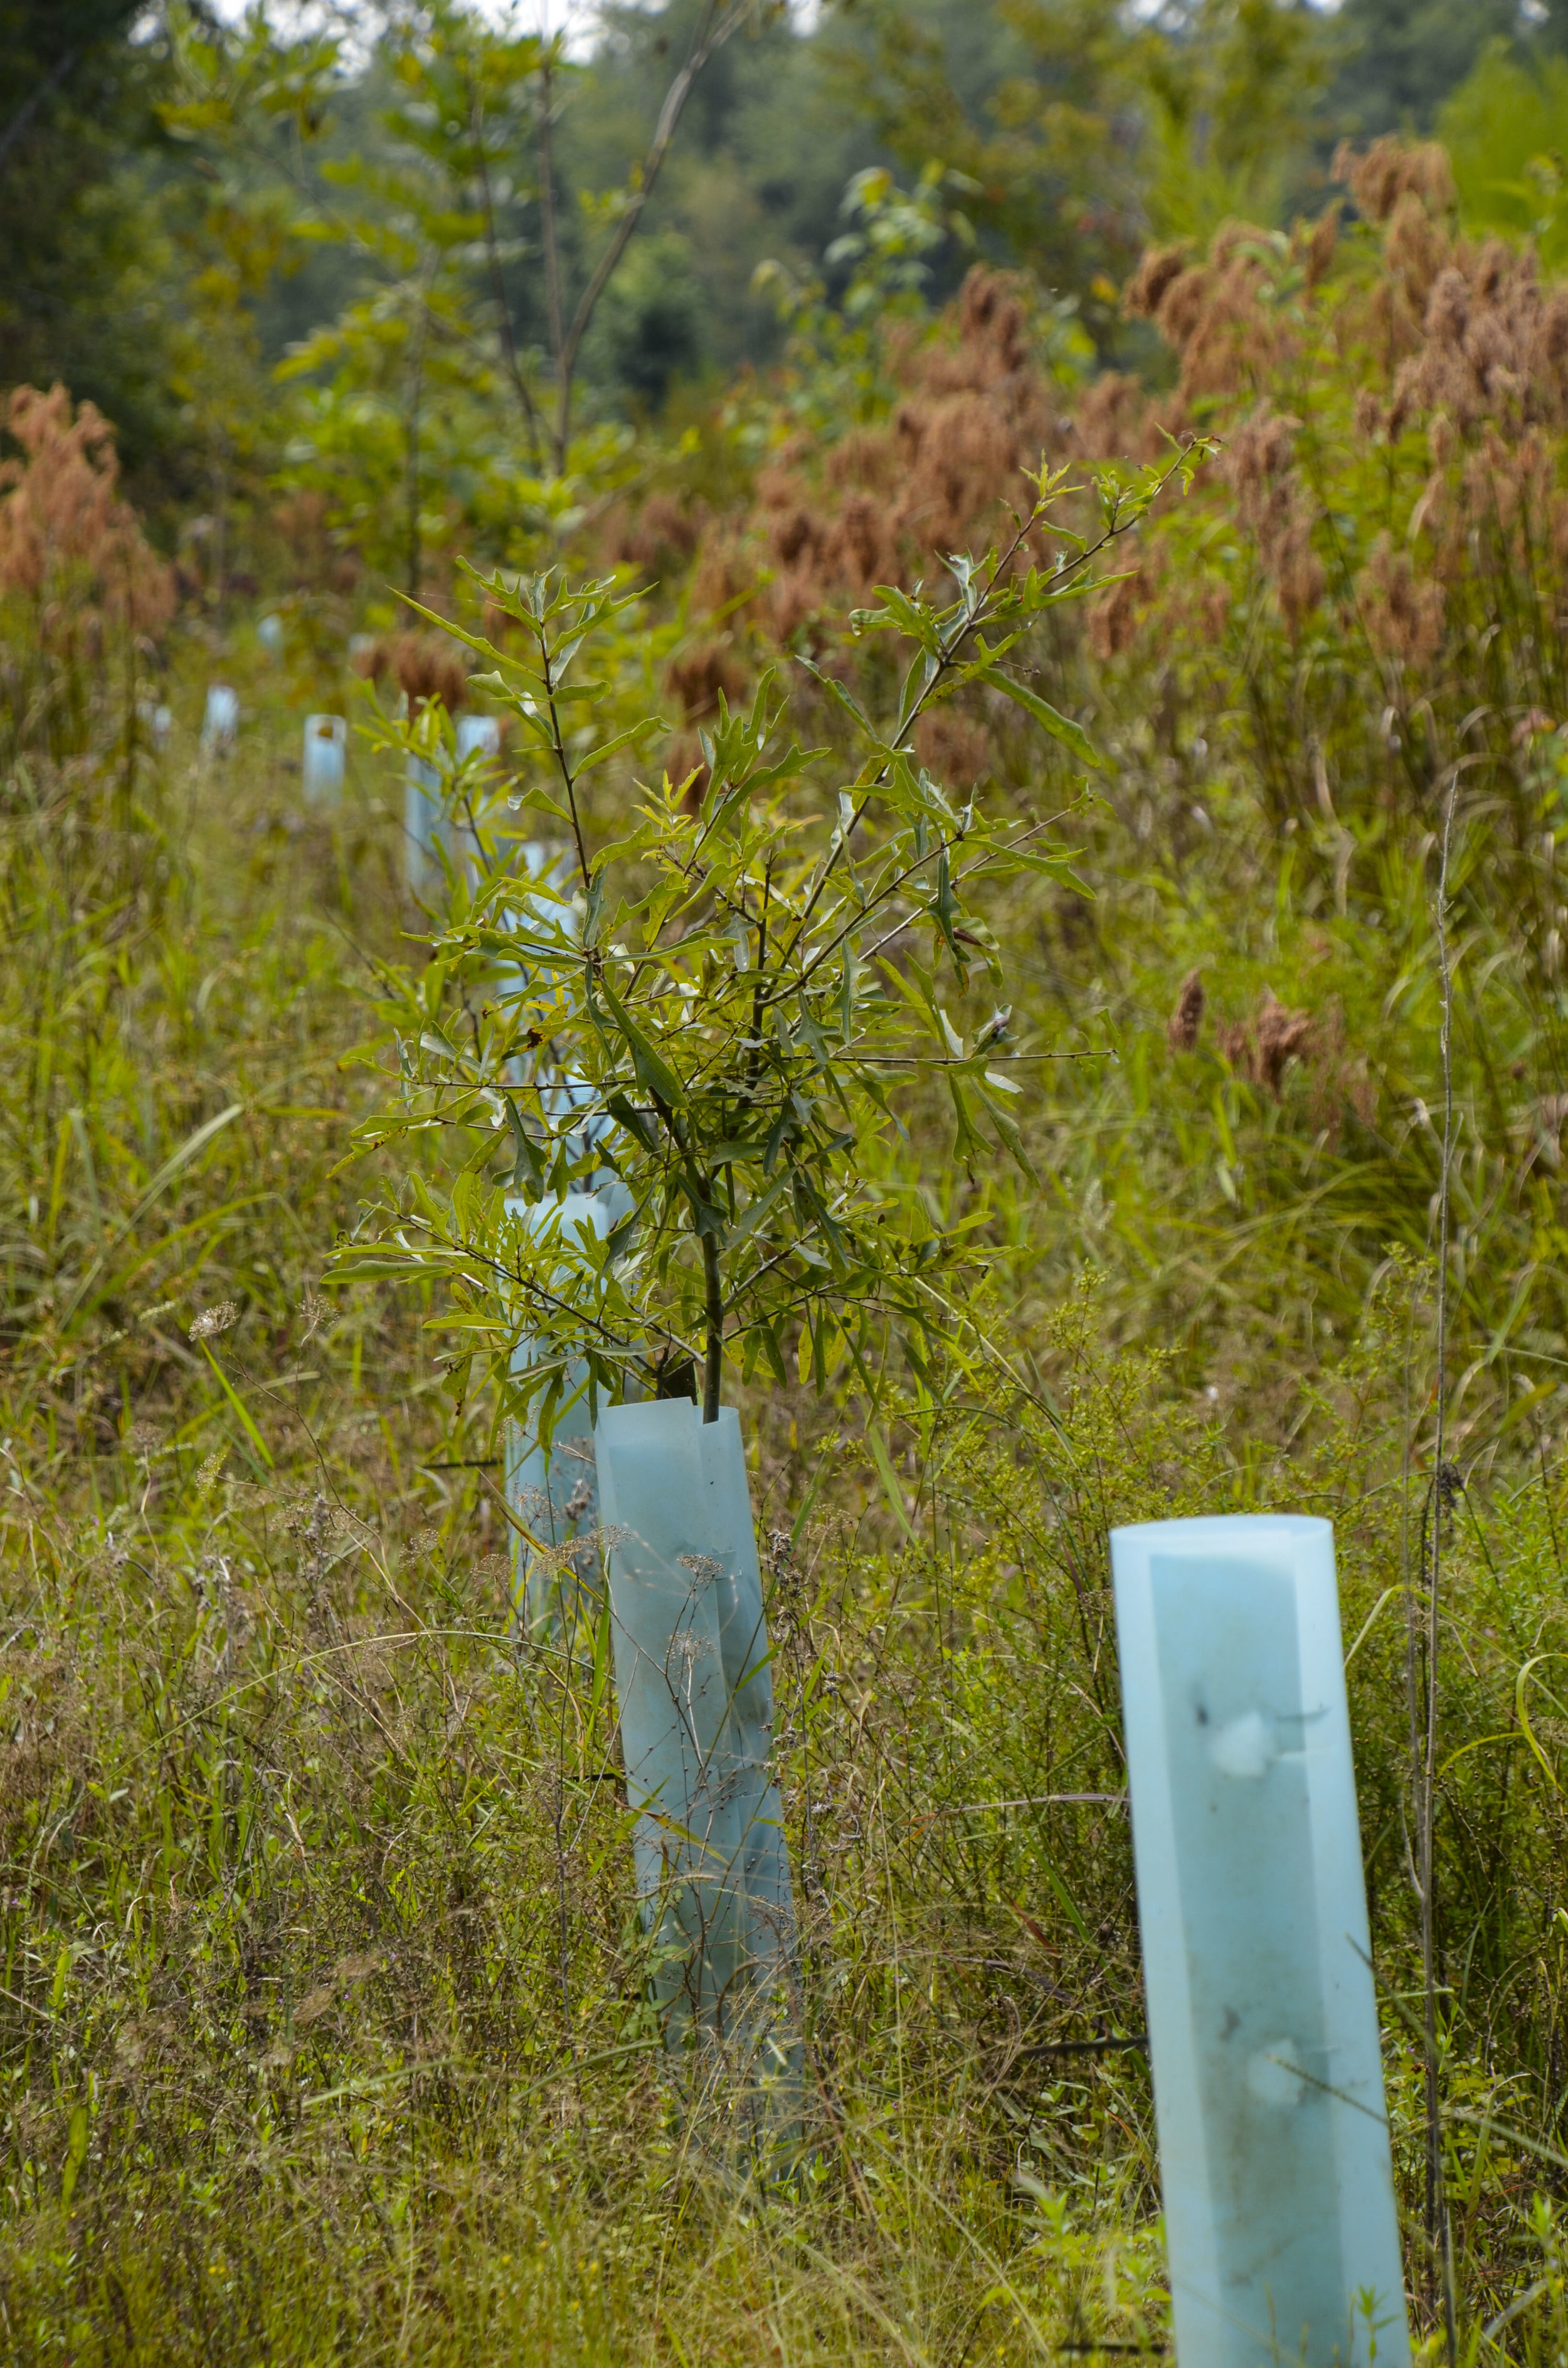 Hardwood trees planted at the Carter Stilley mitigation bank area.